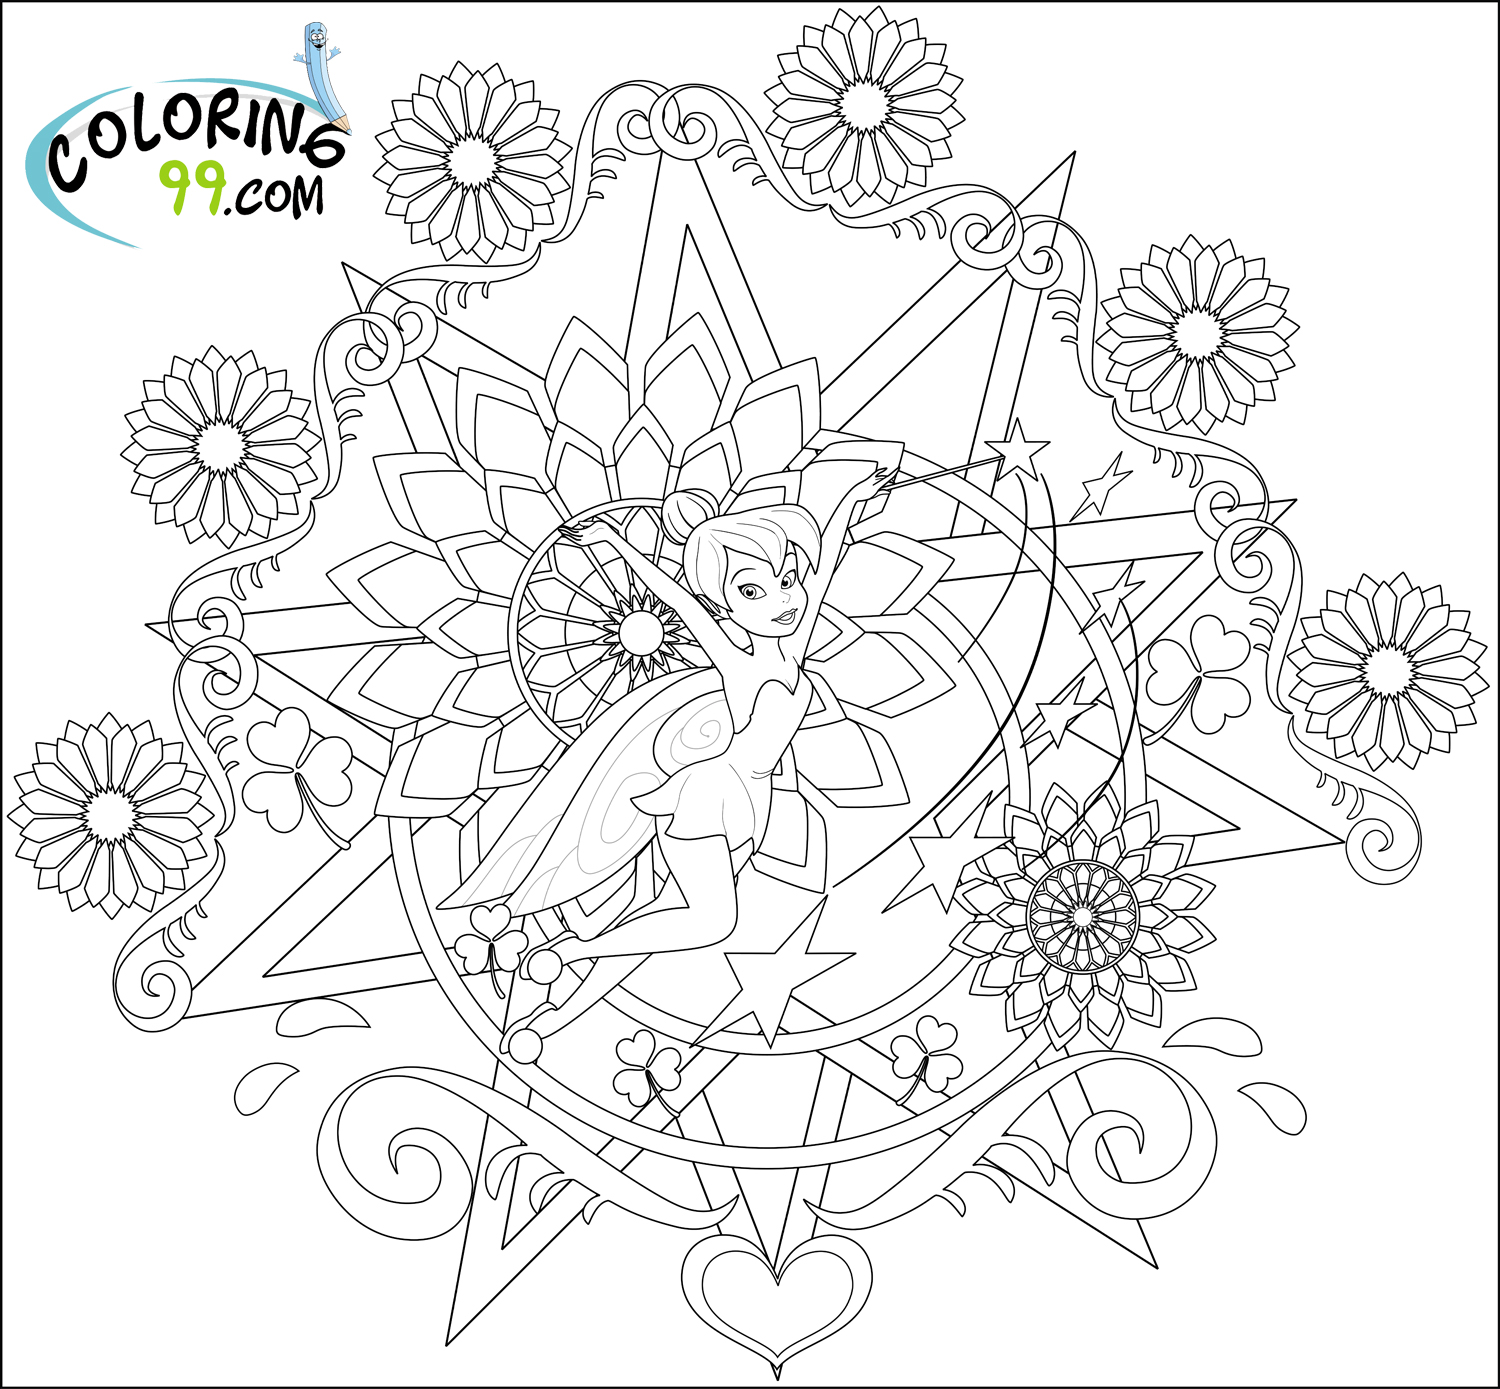 tinkerbell coloring sheets tinkerbell coloring pages sheets tinkerbell coloring